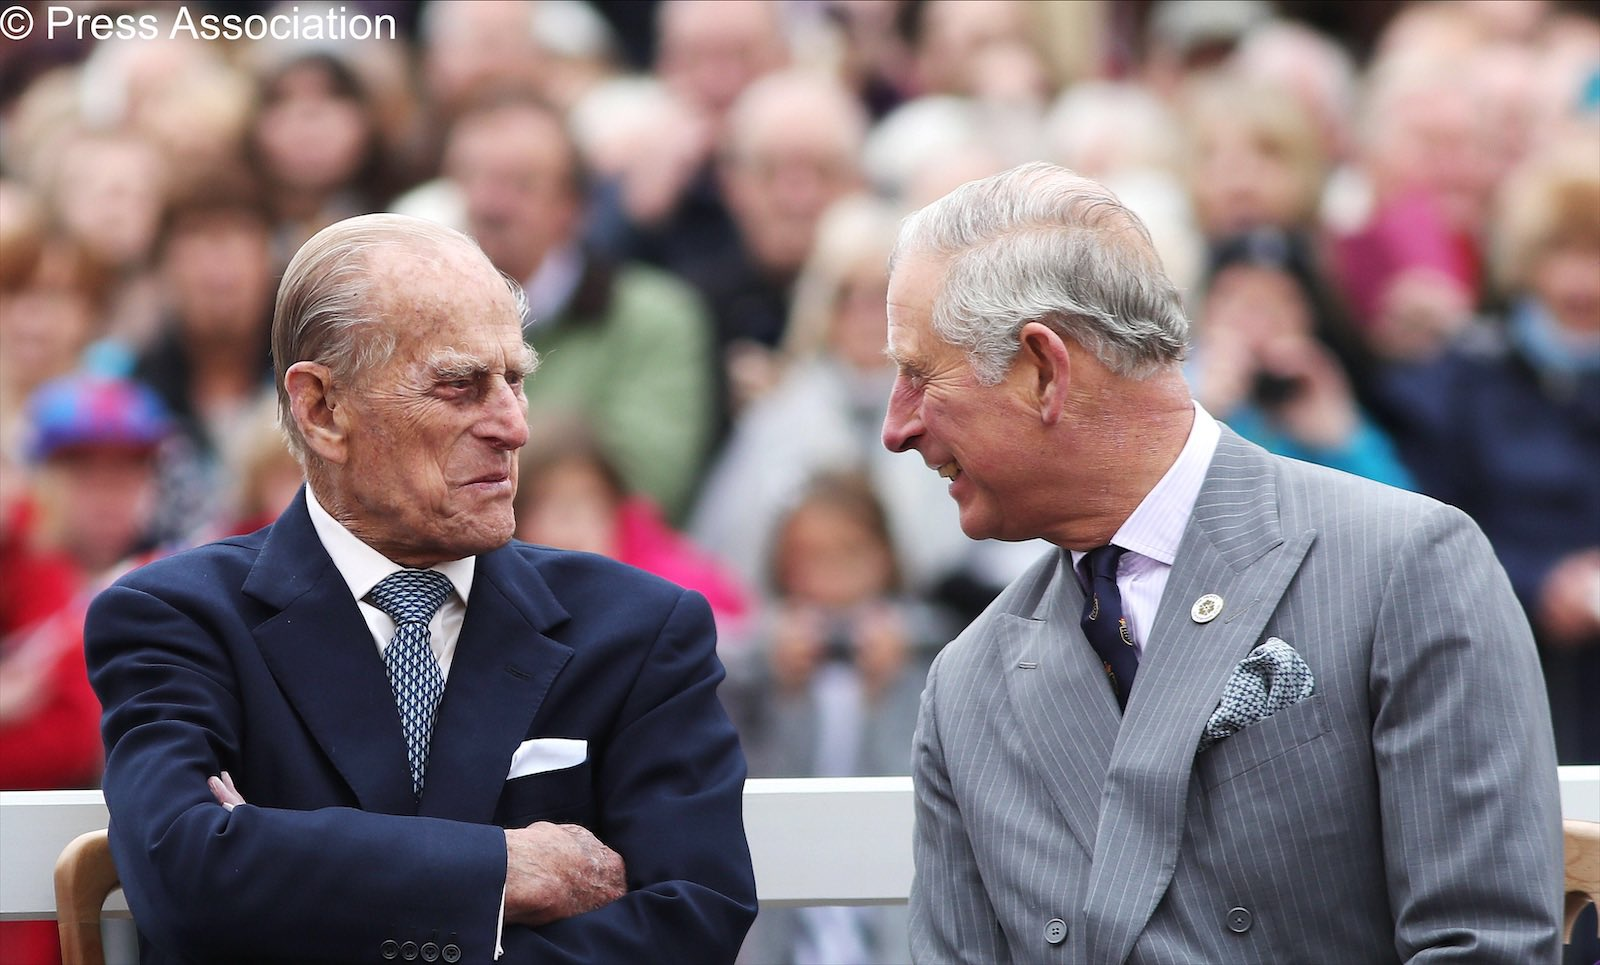 prince philip with charles